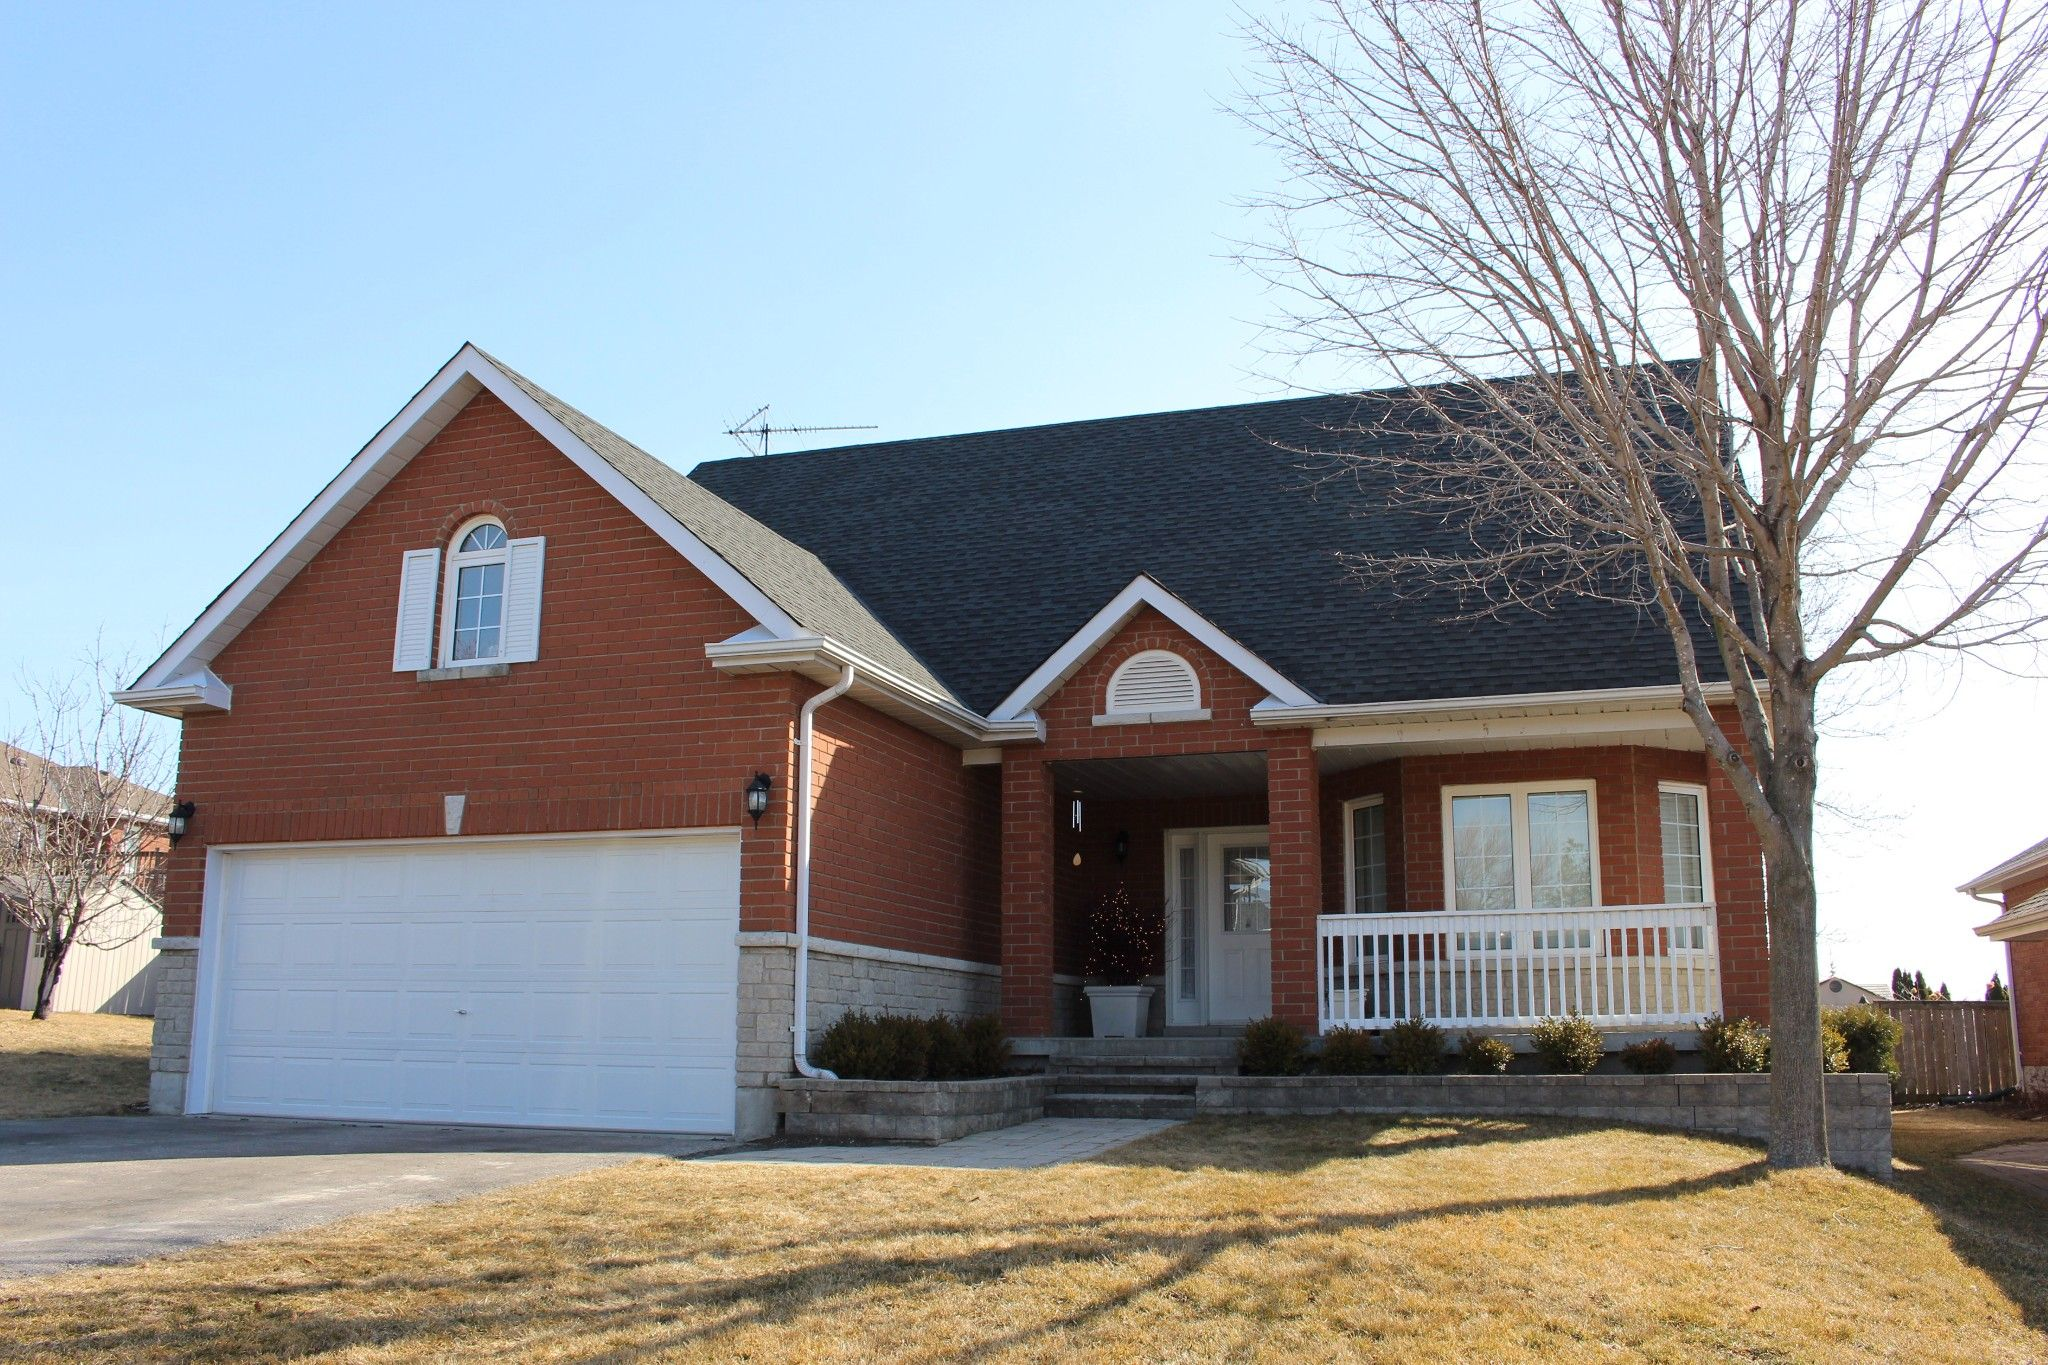 Main Photo: 1180 Ashland Drive in Cobourg: House for sale : MLS®# X5165059